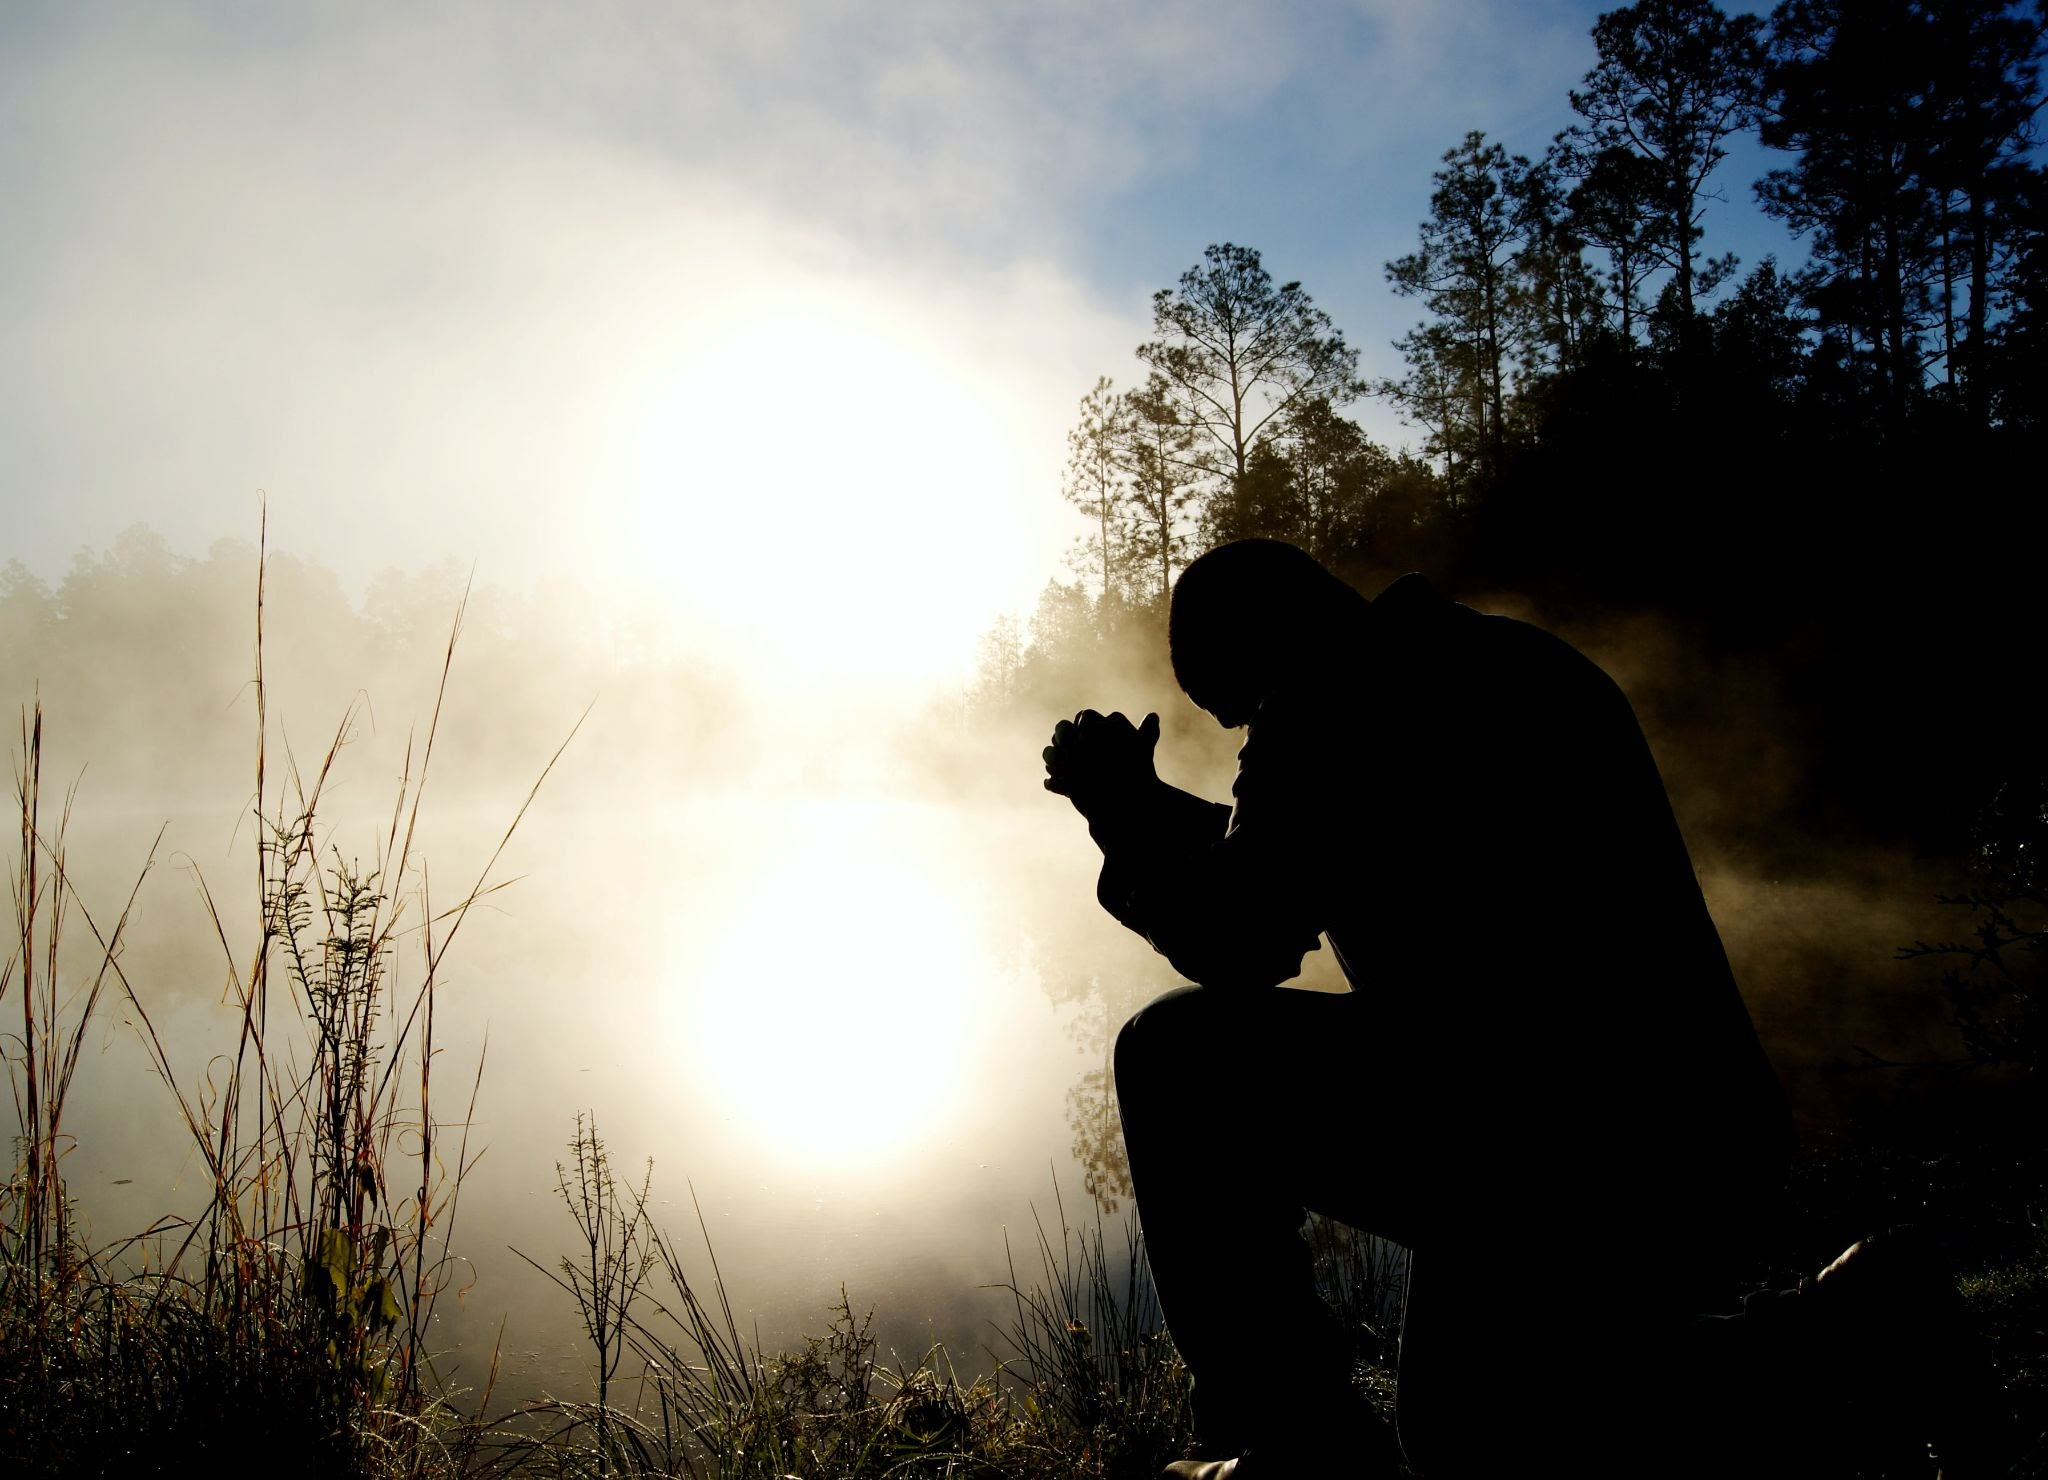 Silhouette of a person praying outside